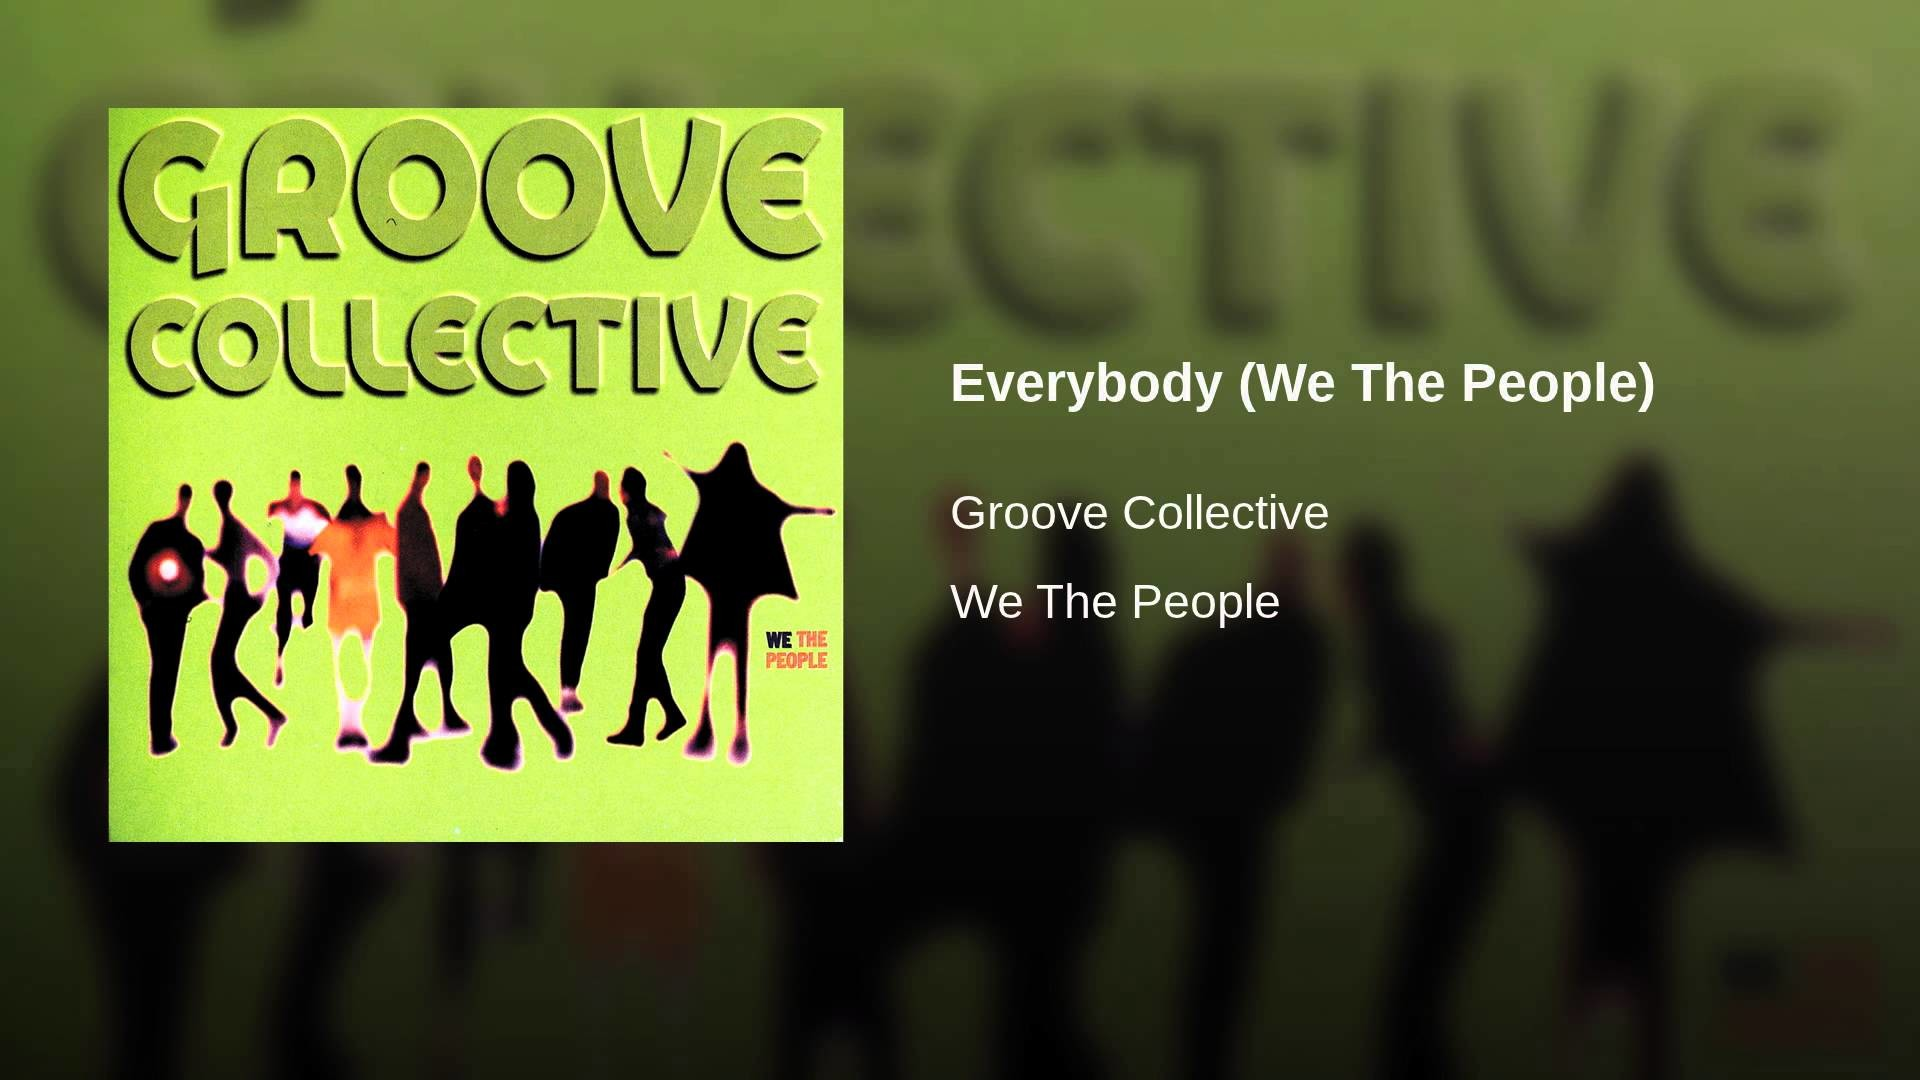 Everybody (We The People)